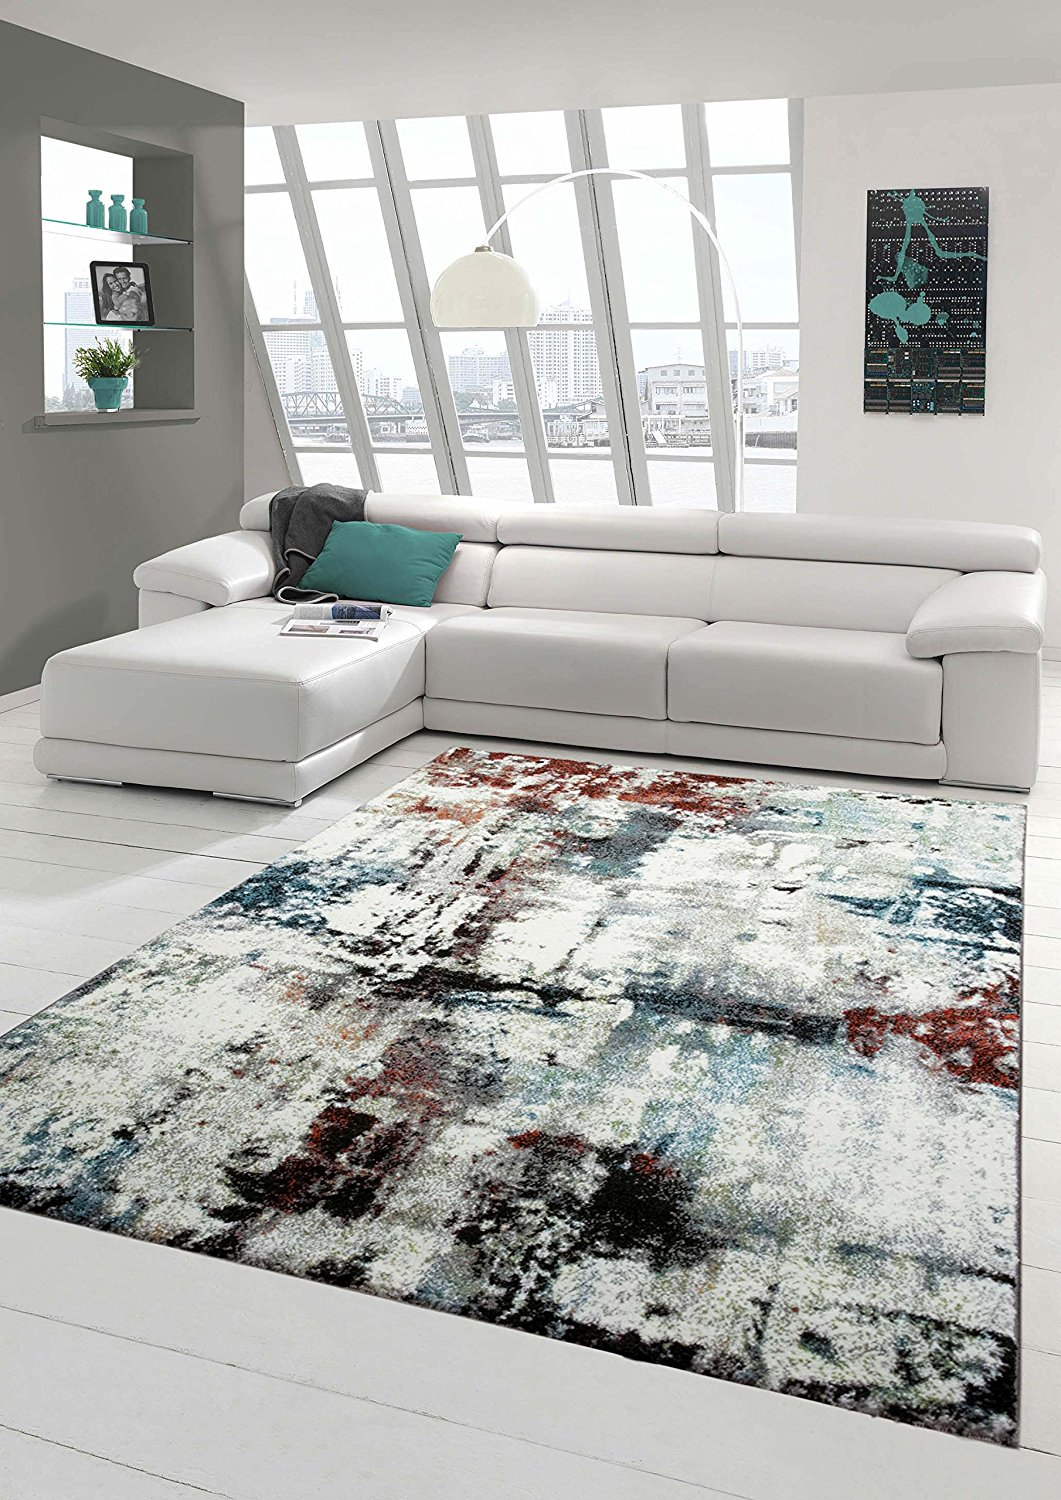 Tapis Salon Design Pas Cher Tapis Pas Cher Design Et Contemporain Grand Tapis Salon